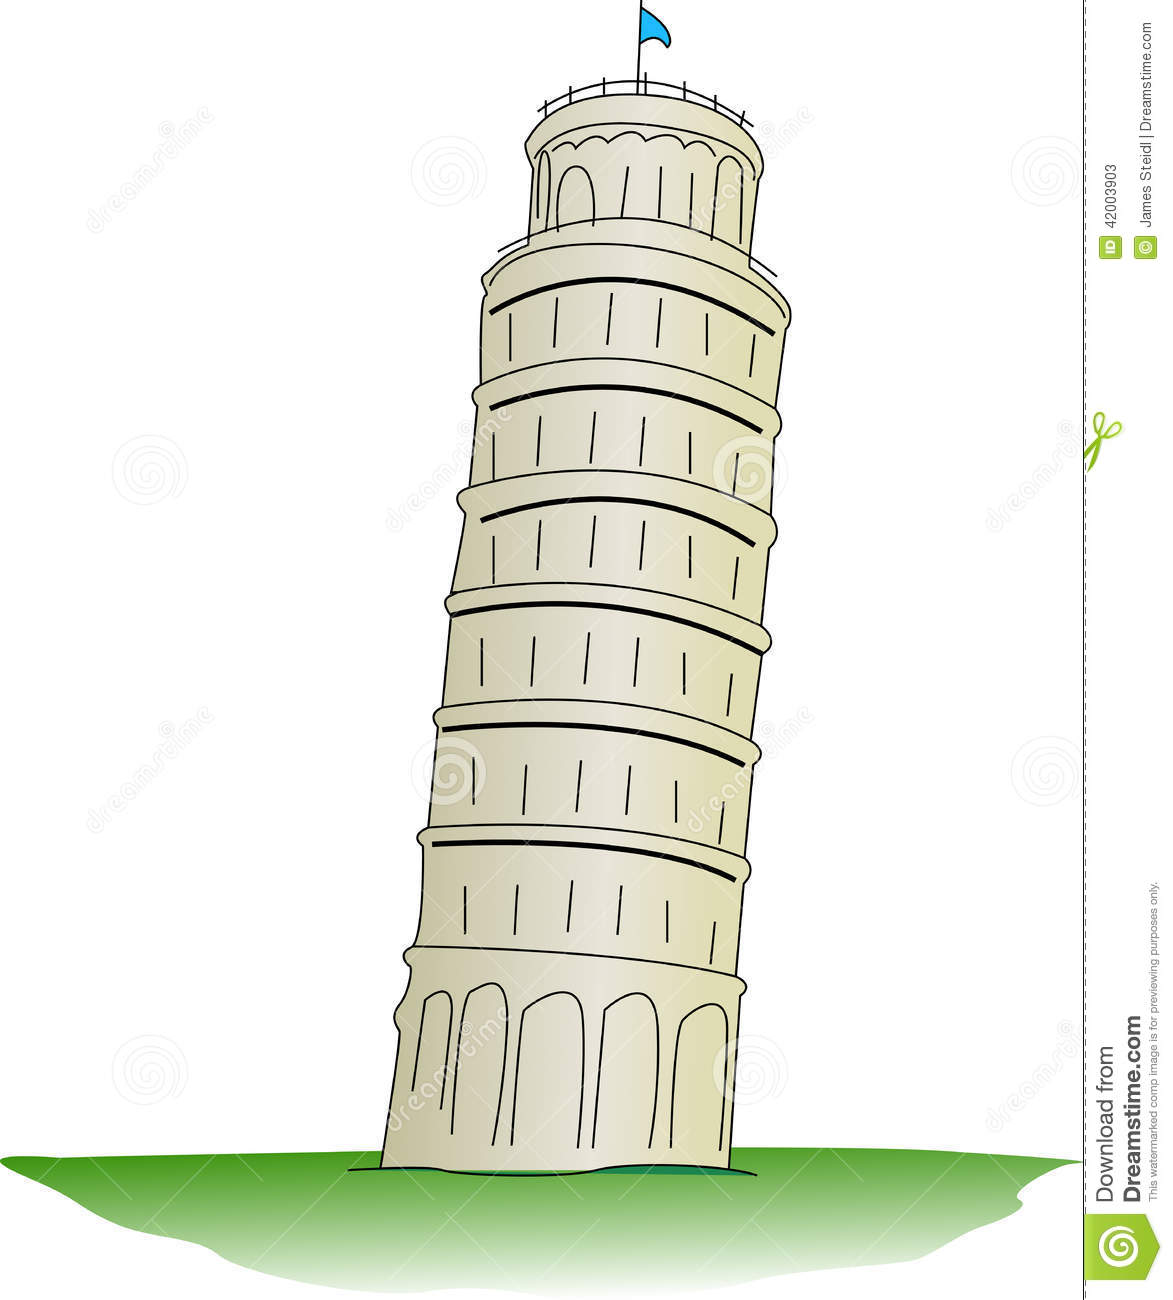 School Bell likewise Coffee Bean Vector in addition Cartoon Character Bomb additionally Leaning Tower Pisa Clip Art together with Motorcycle Cartoon Characters. on coloring map of the united states